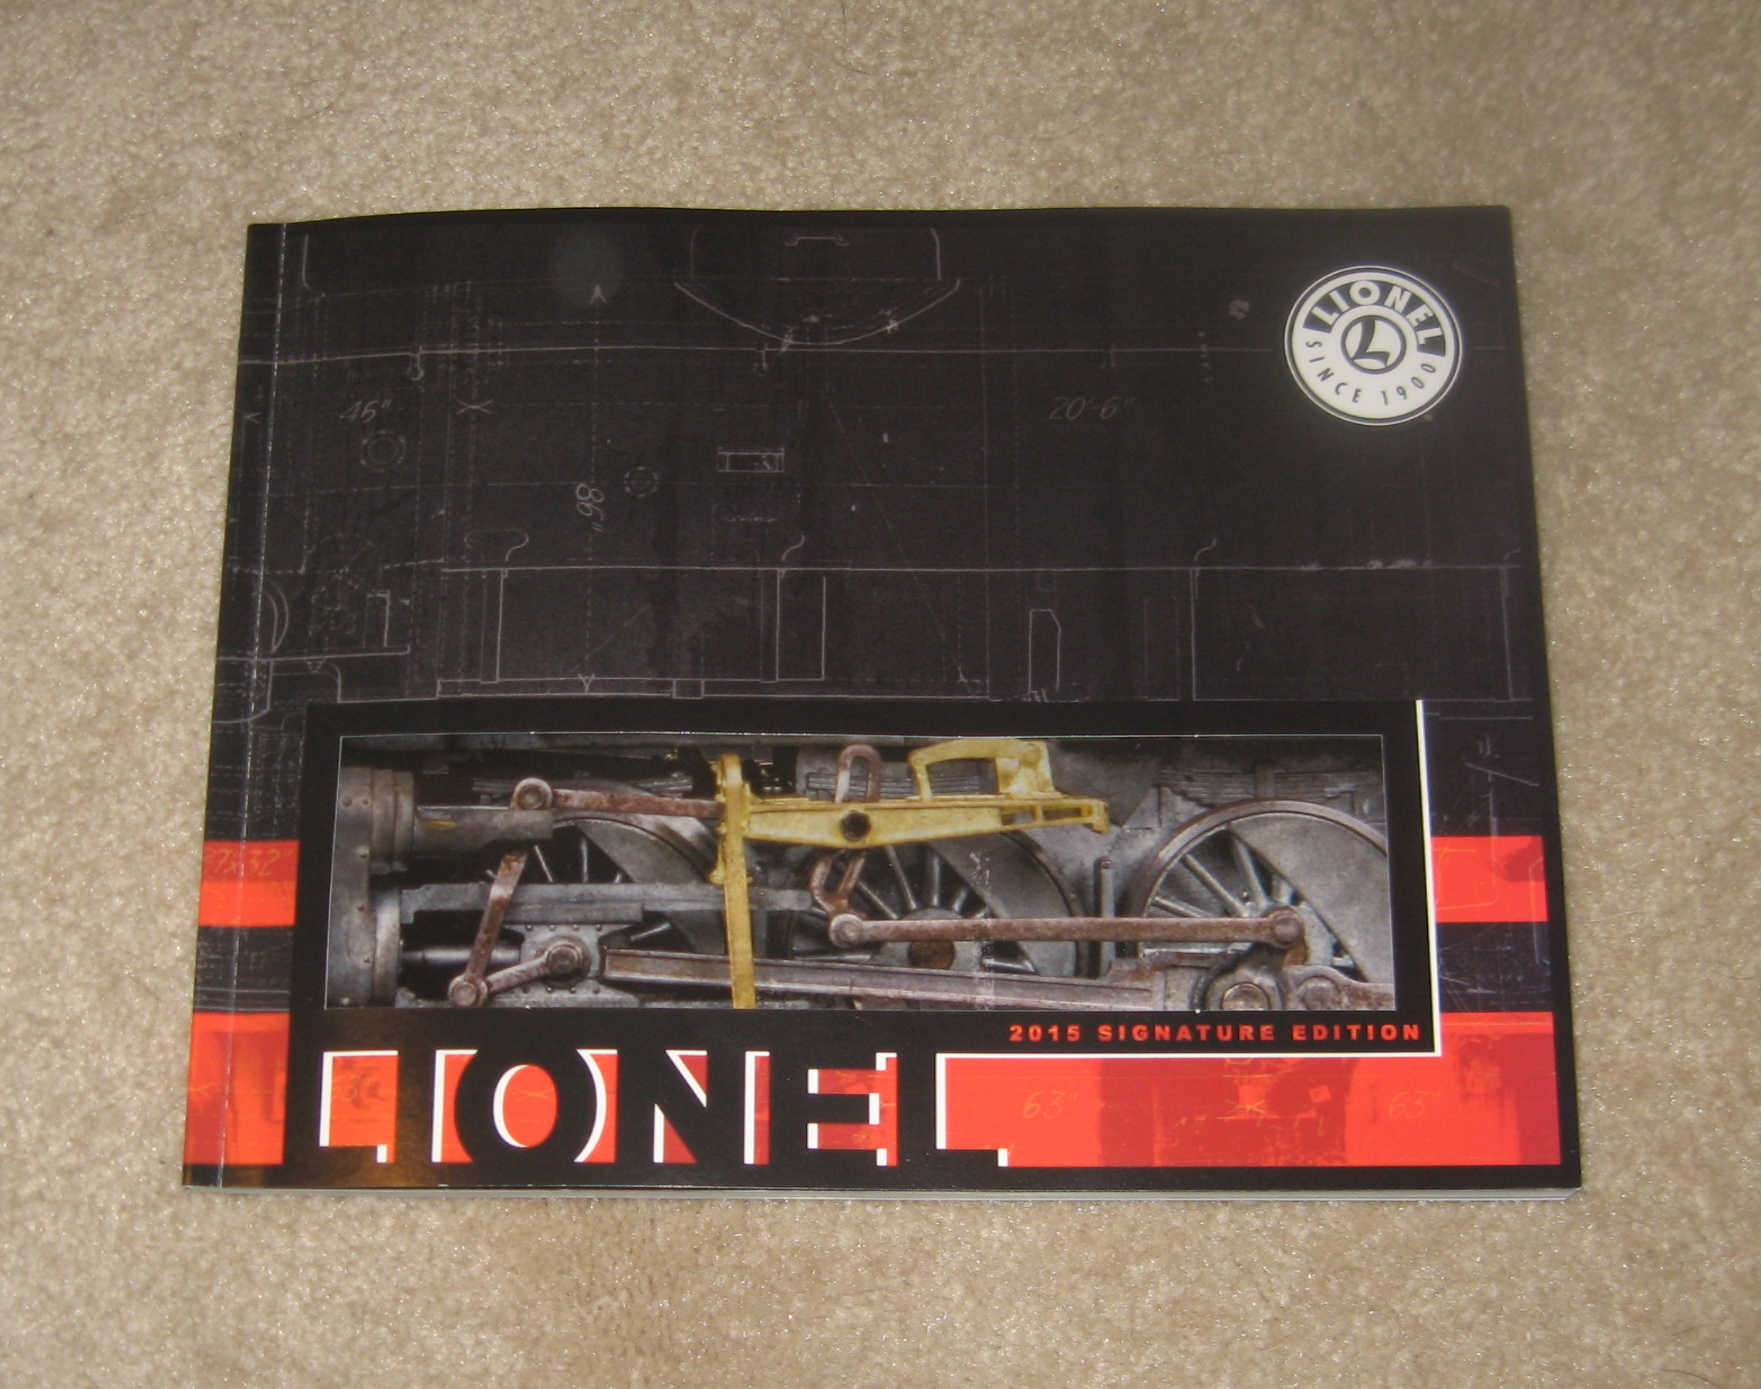 2015 Lionel Trains Signature Edition Catalog. Mint Condition.